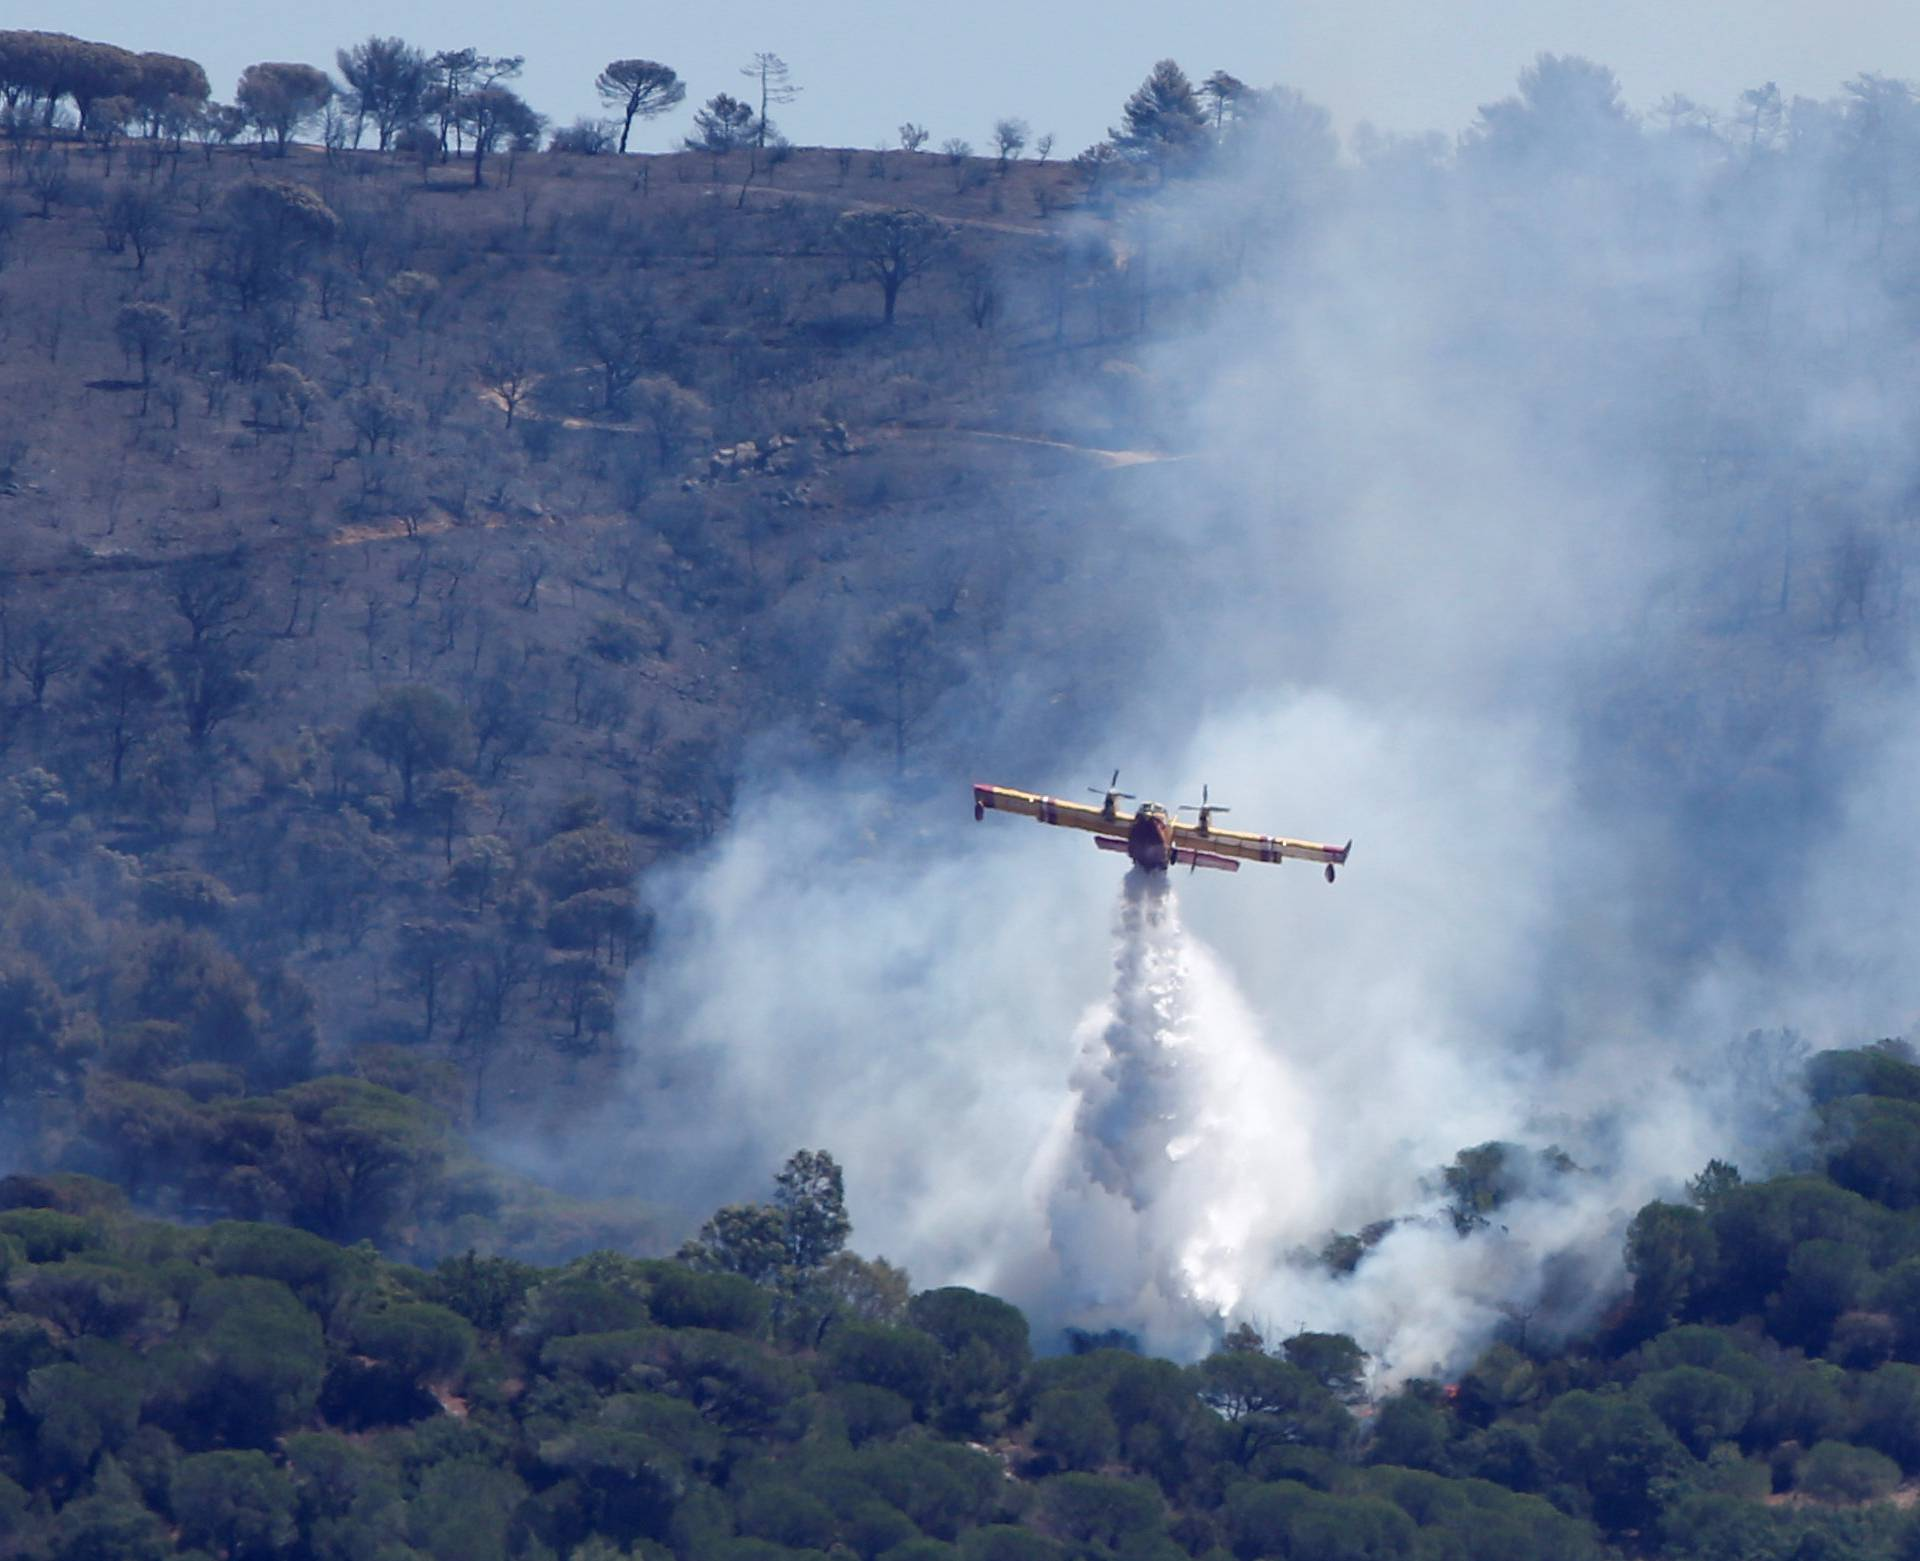 A Canadair firefighting plane drops water to extinguish a forest fire on La Croix-Valmer from Cavalaire-sur-Mer